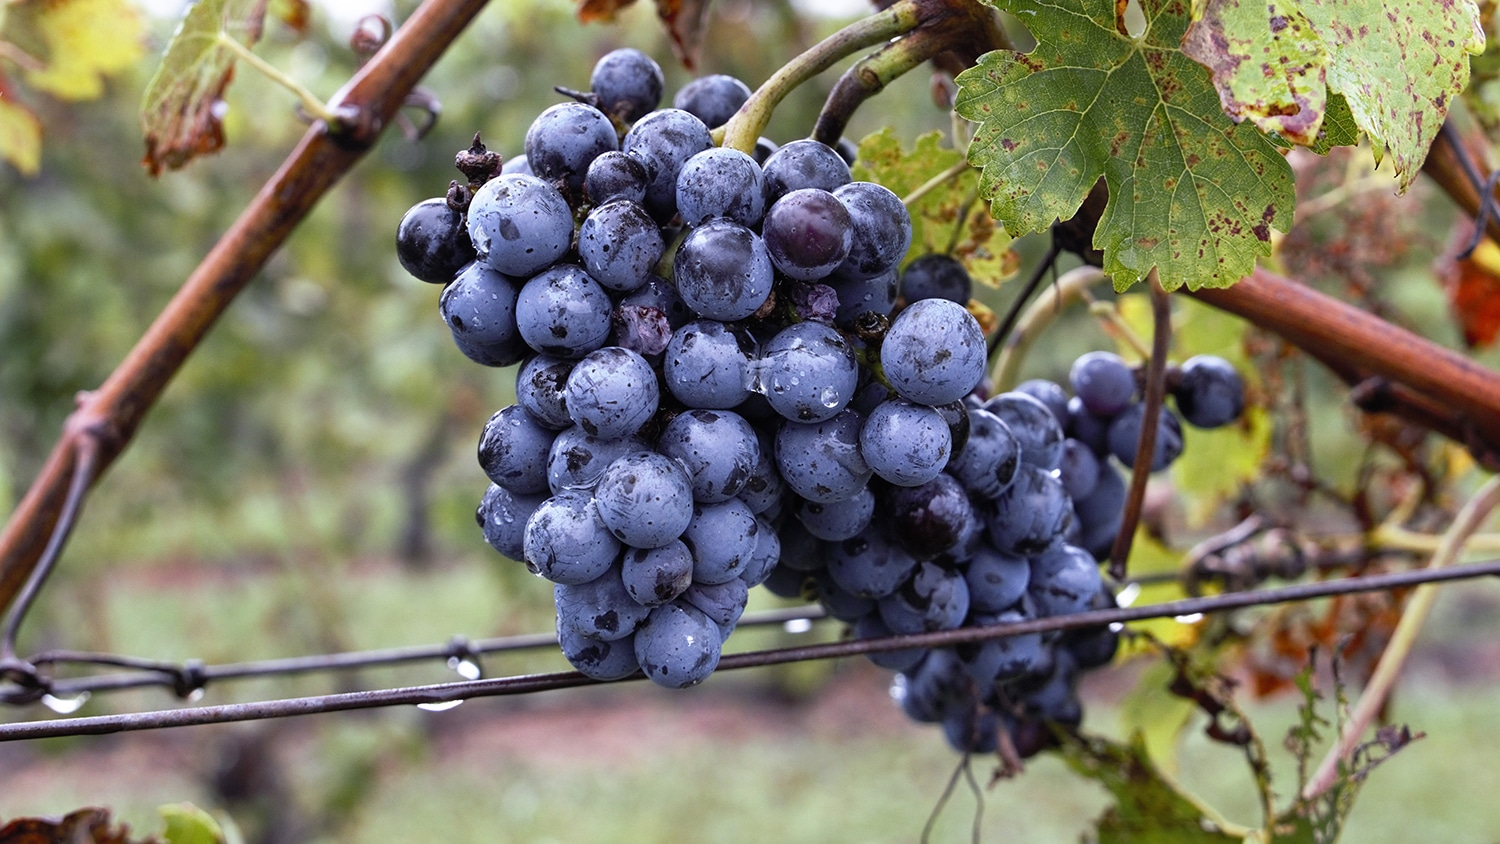 Unharvested grapes on the vine.